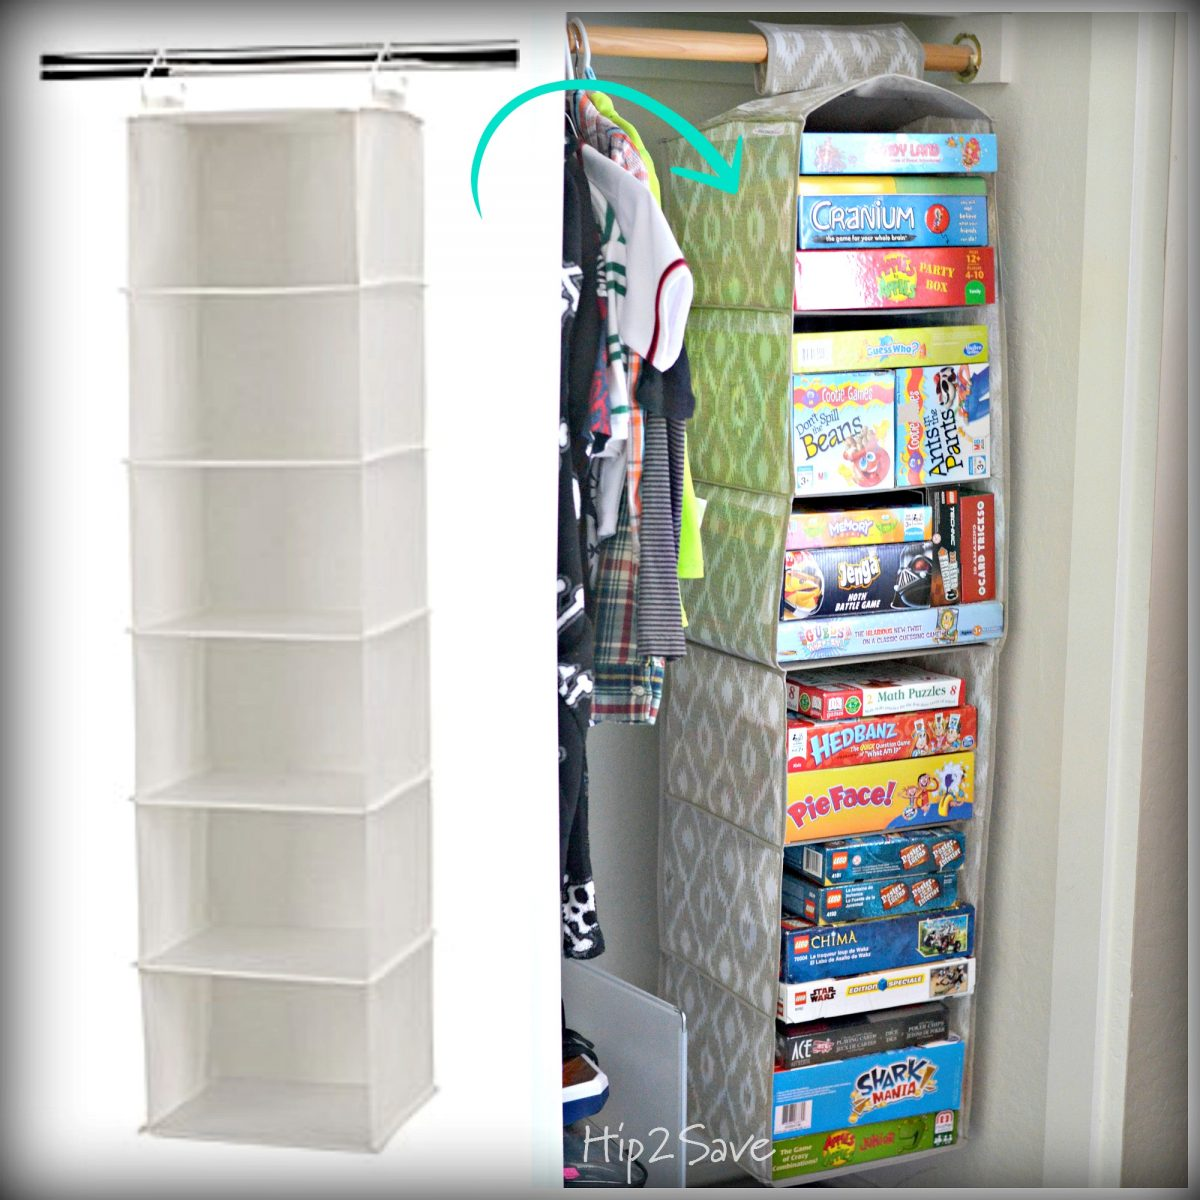 Sweater Rack to Game & Toy Organizer Hip2Save.com